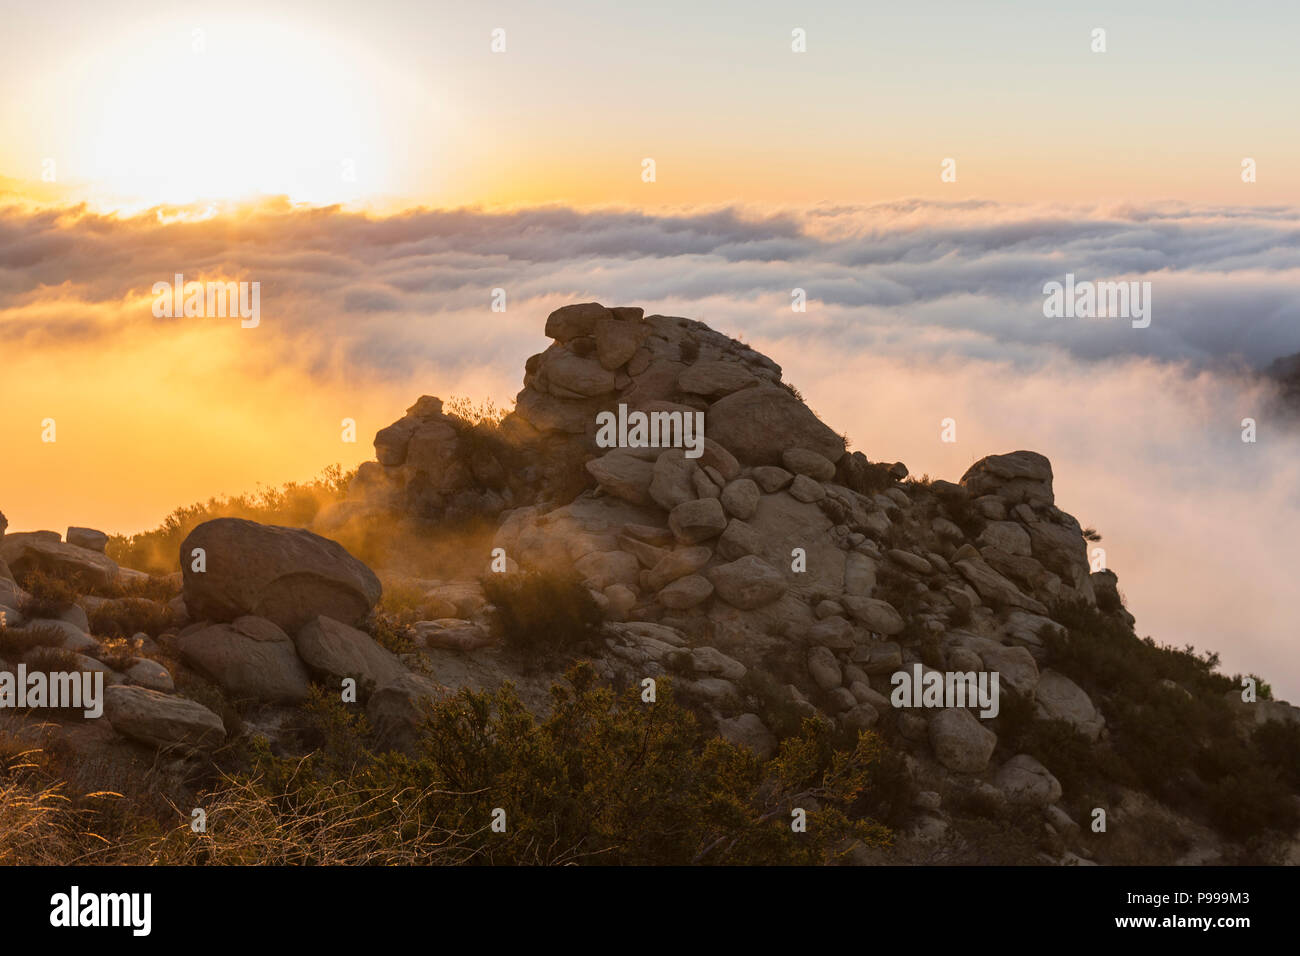 Sunrise clouds above Rocky Peak Park in the San Fernando Valley area of Los Angeles, California. Stock Photo